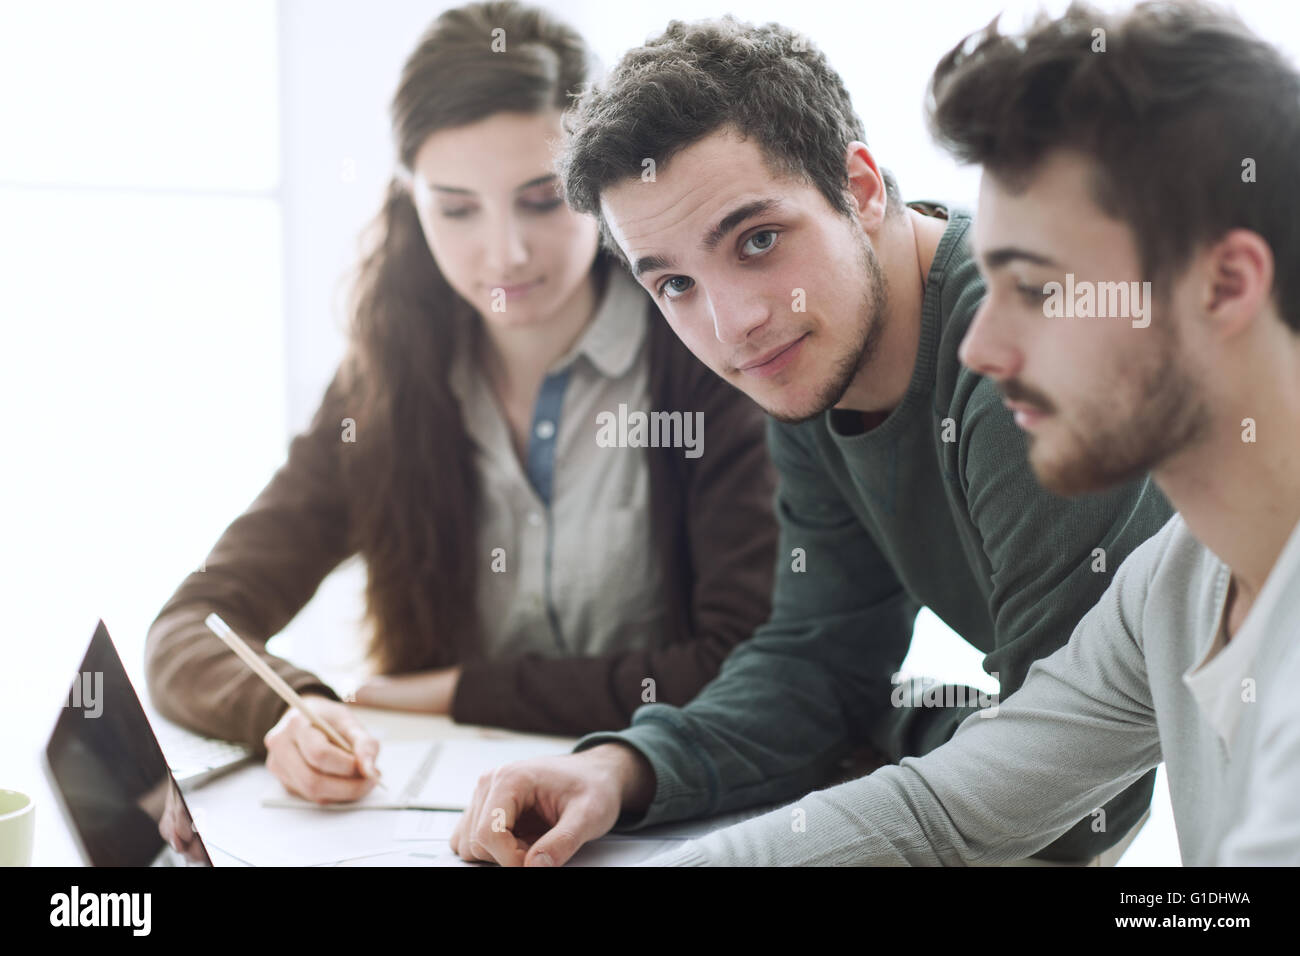 Group of college students at desk using a laptop, networking and studying together, education and learning concept - Stock Image